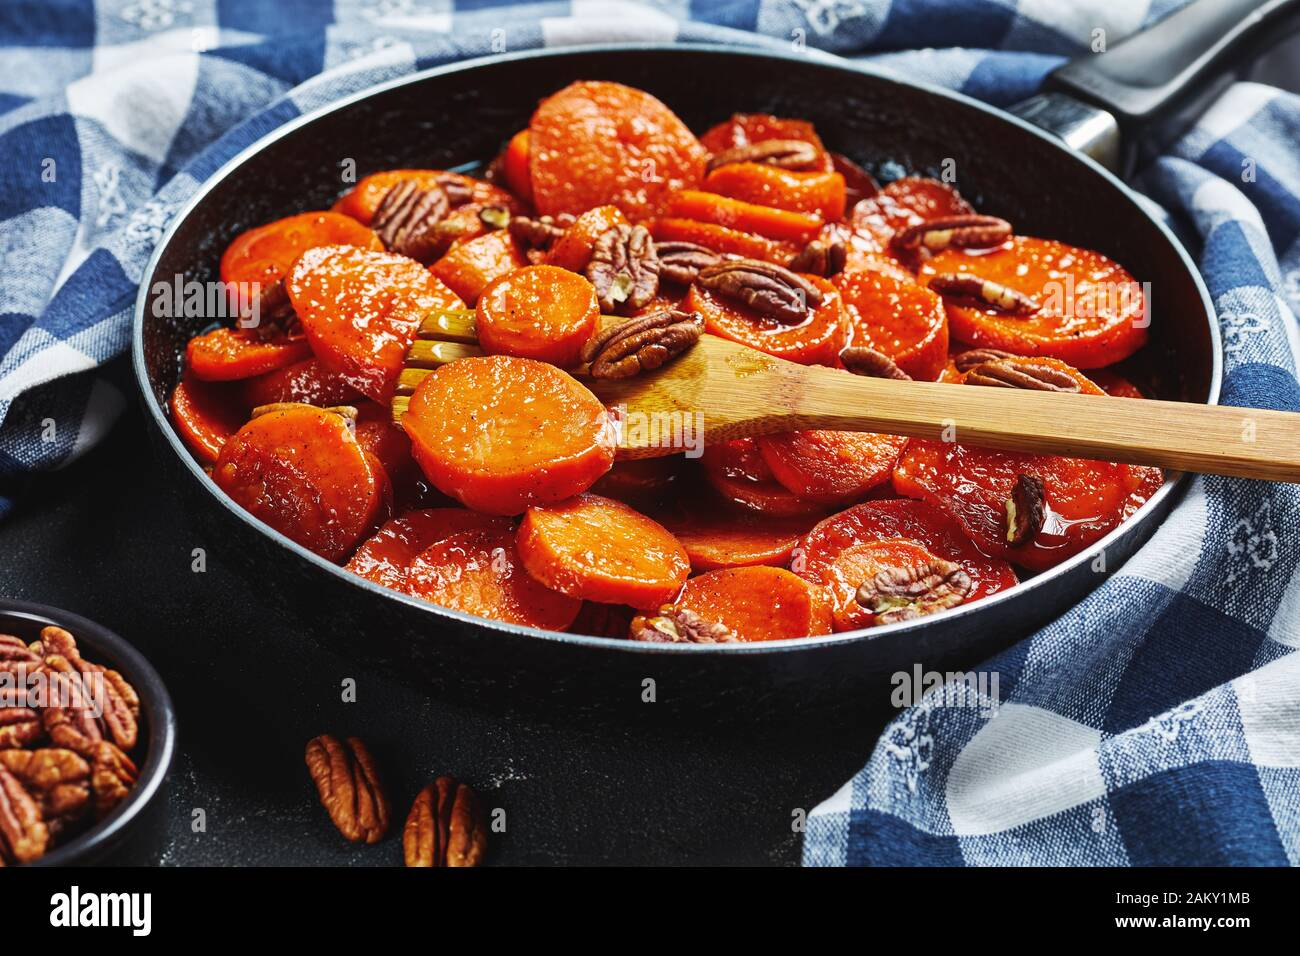 close-up of Candied sweet potatoes with brown sugar, maple syrup, orange juice and pecan nuts in a skillet with wooden spatula, view from above Stock Photo